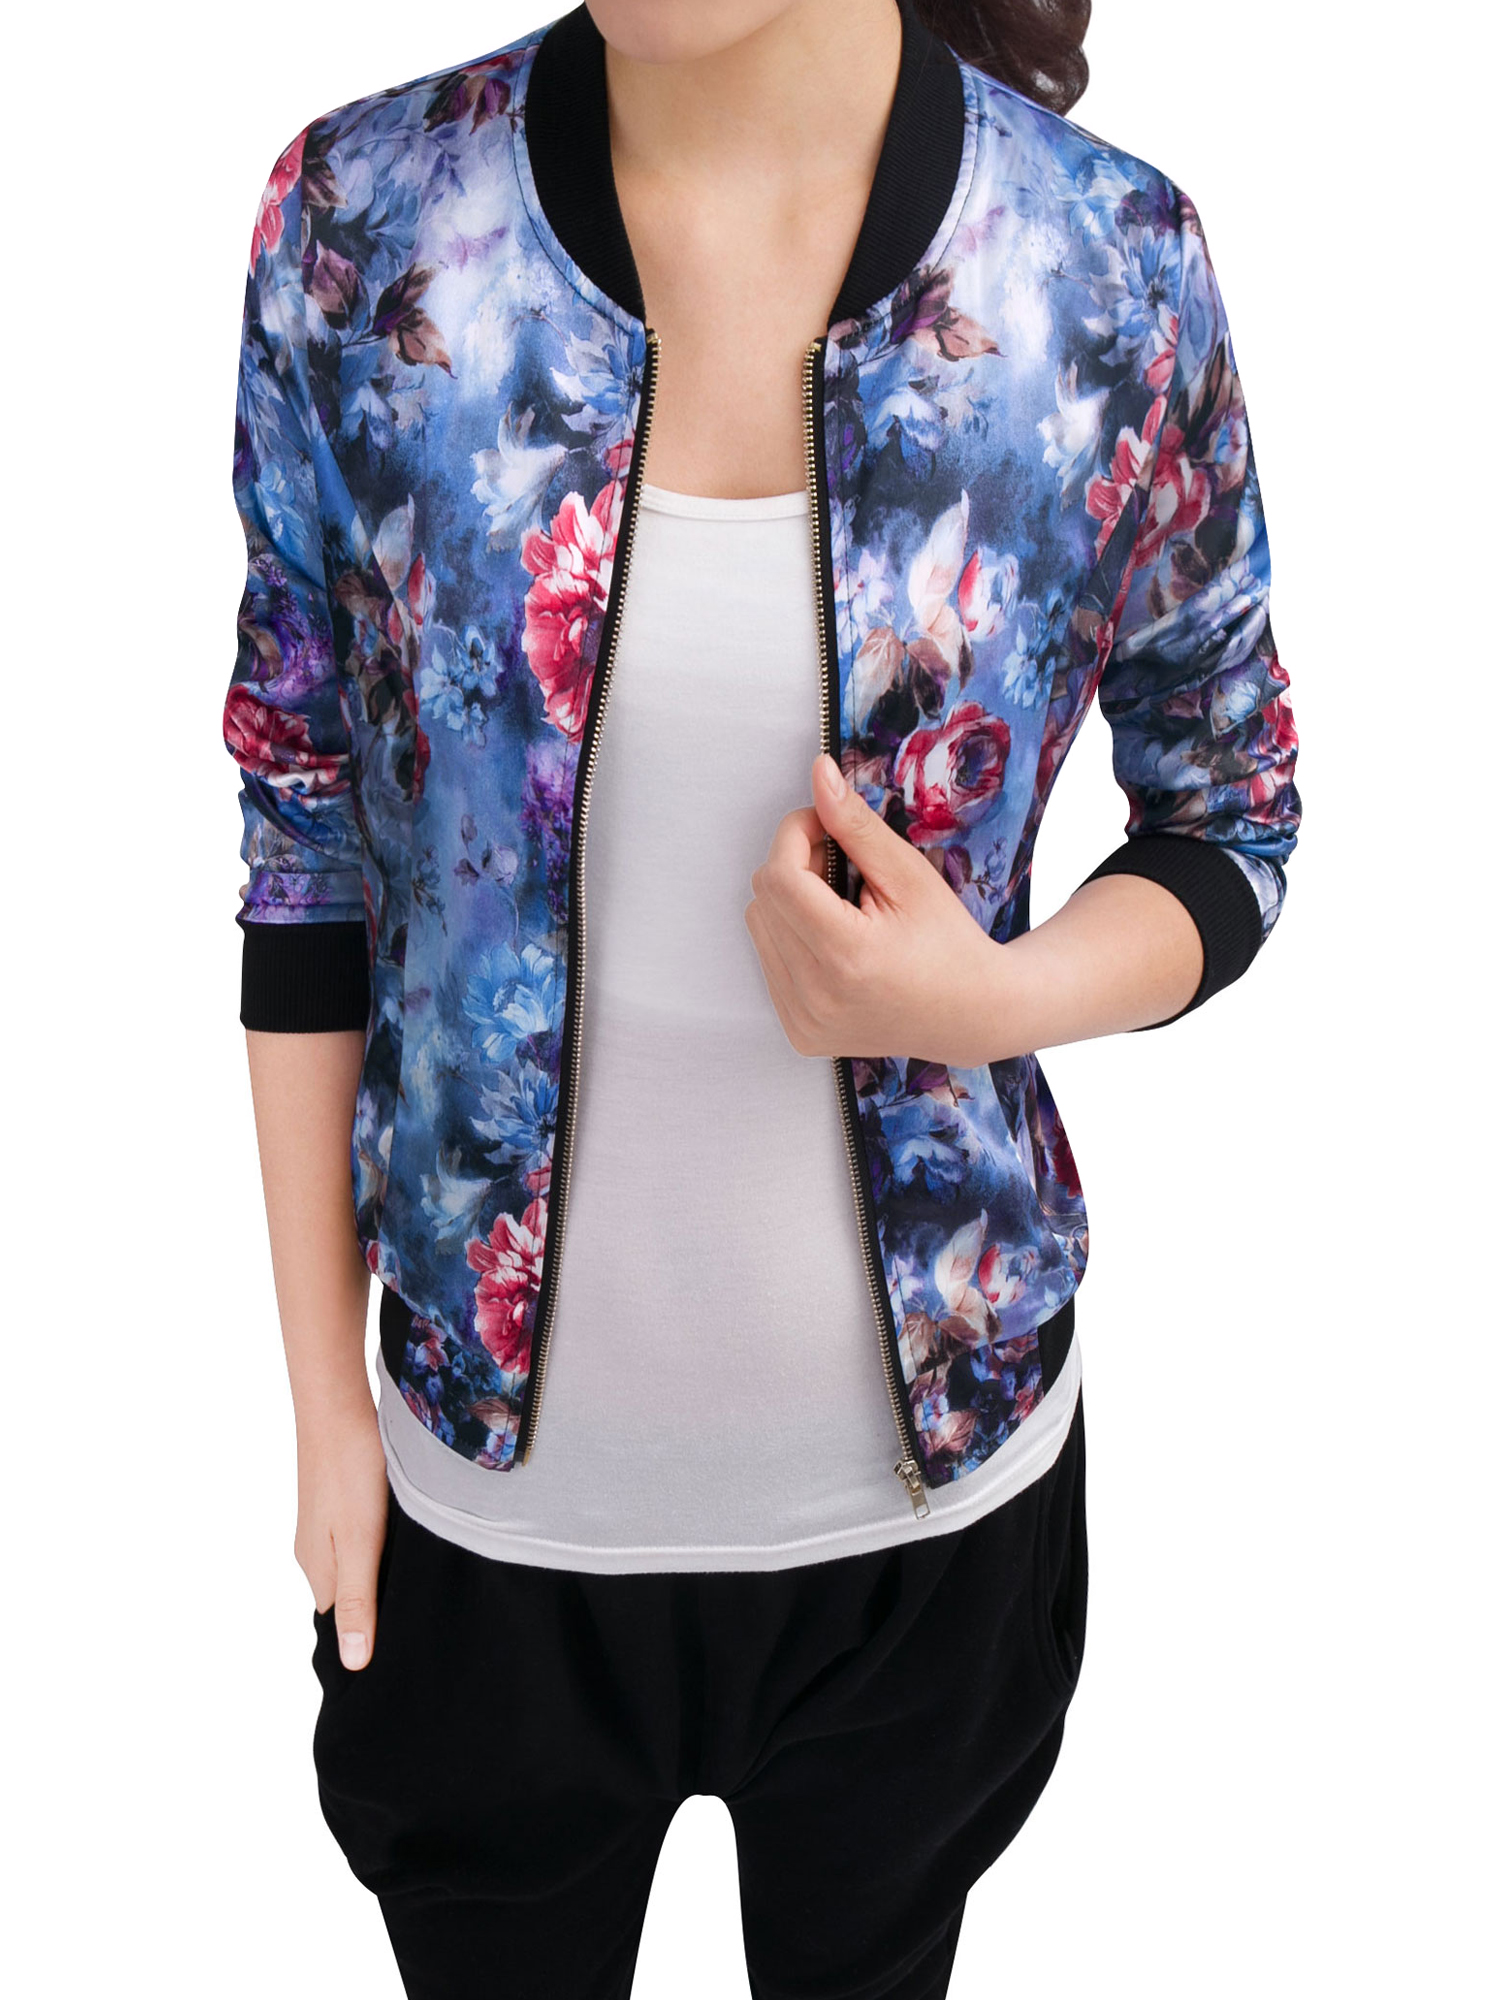 Women Long Sleeves Floral Pattern Leisure Jackets Blue XL